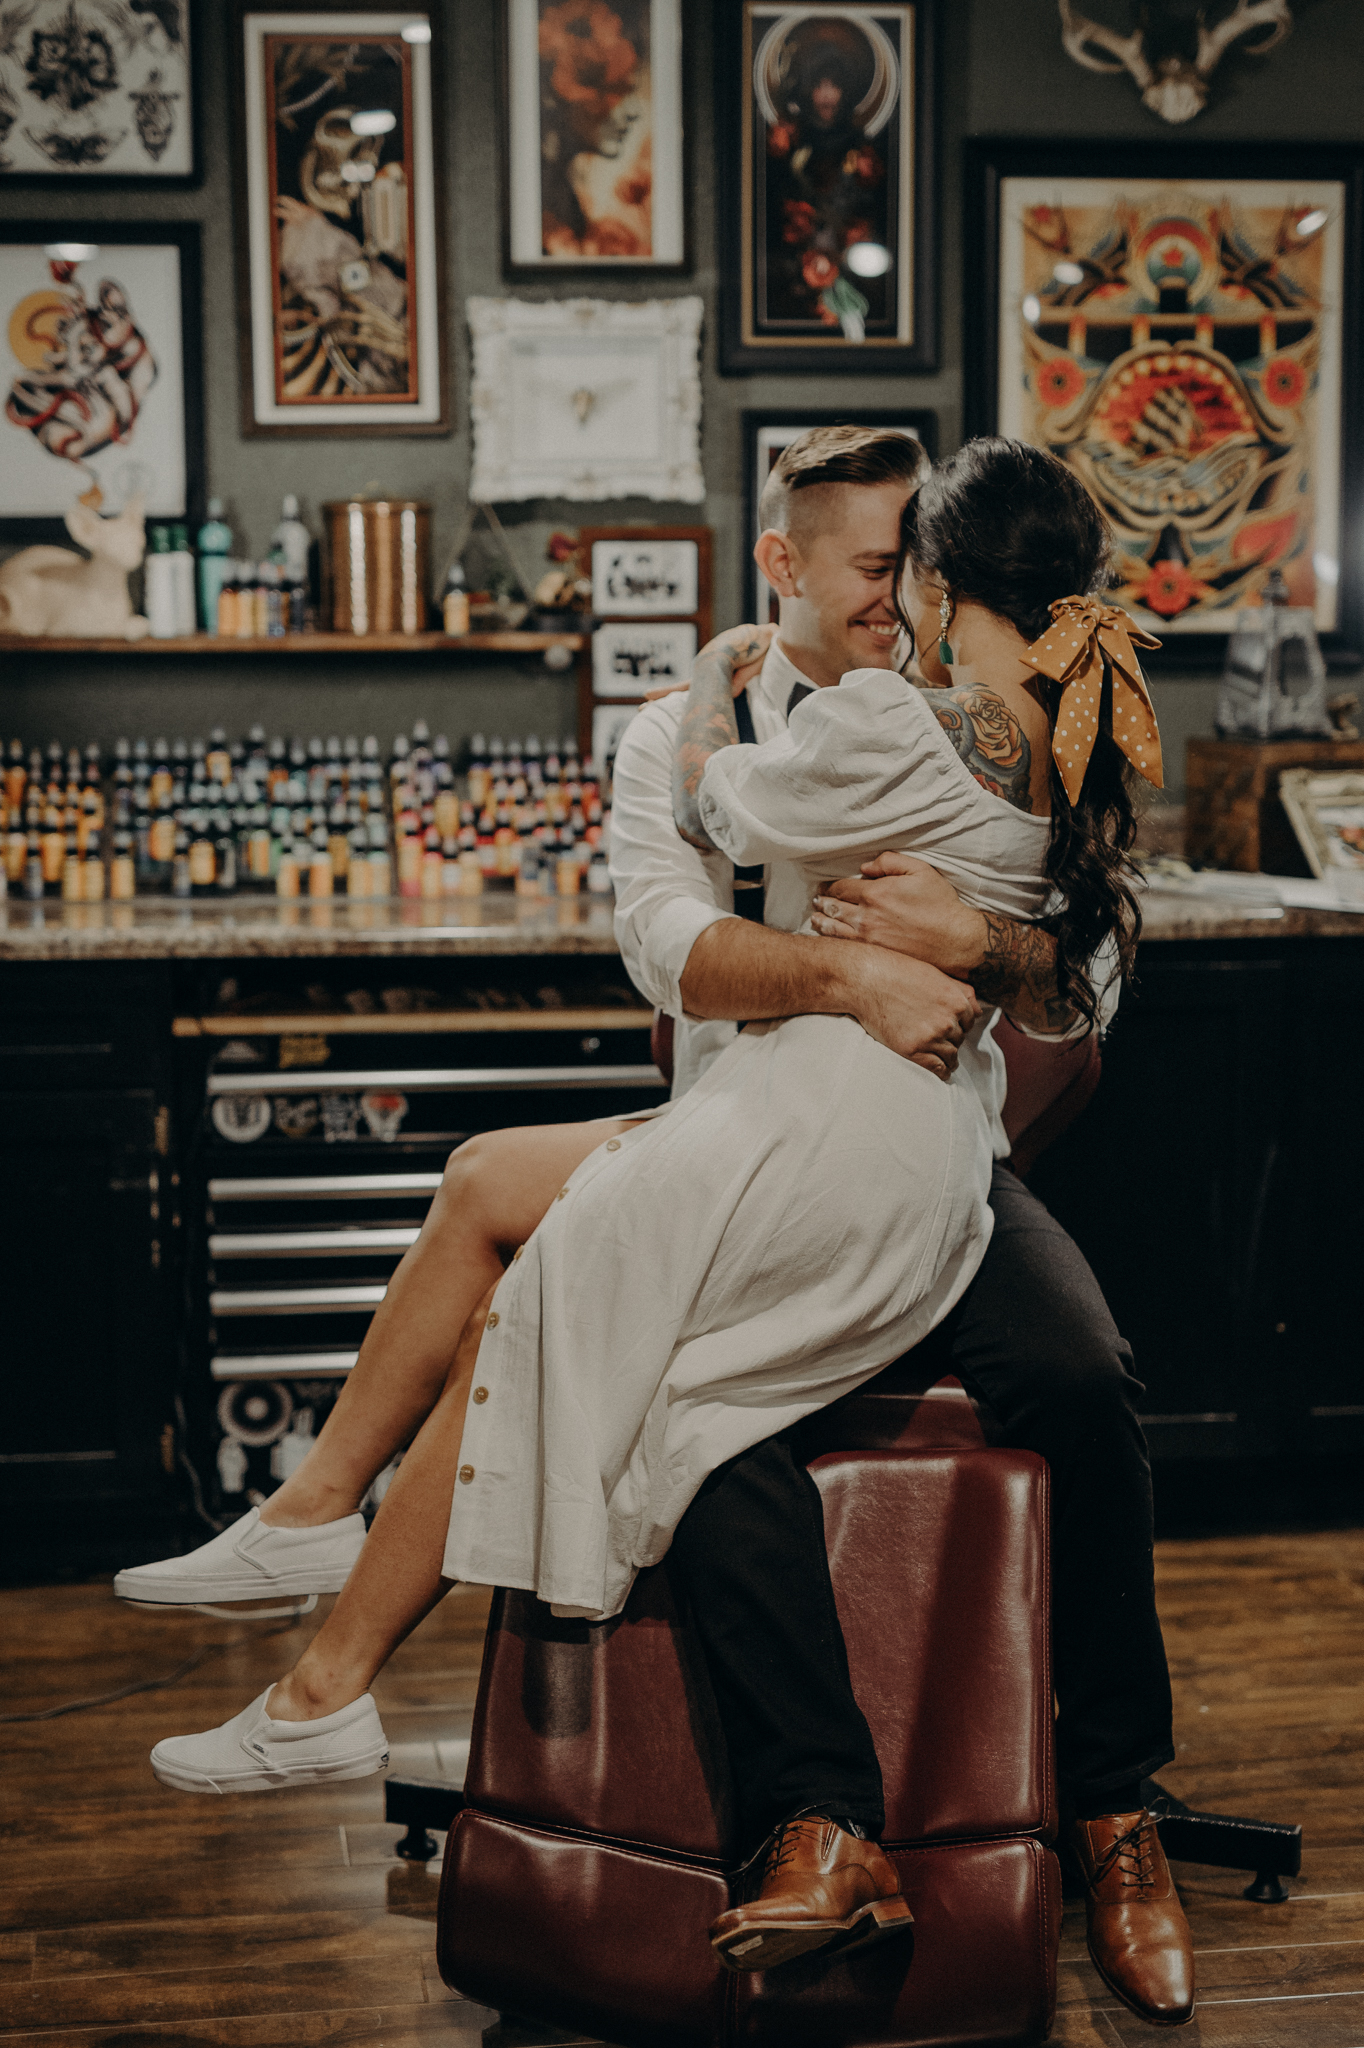 Wedding Photographer in LA - Los Angeles Wedding Photos - Tattoo Shop Engagement Session - IsaiahAndTaylor.com-015.jpg